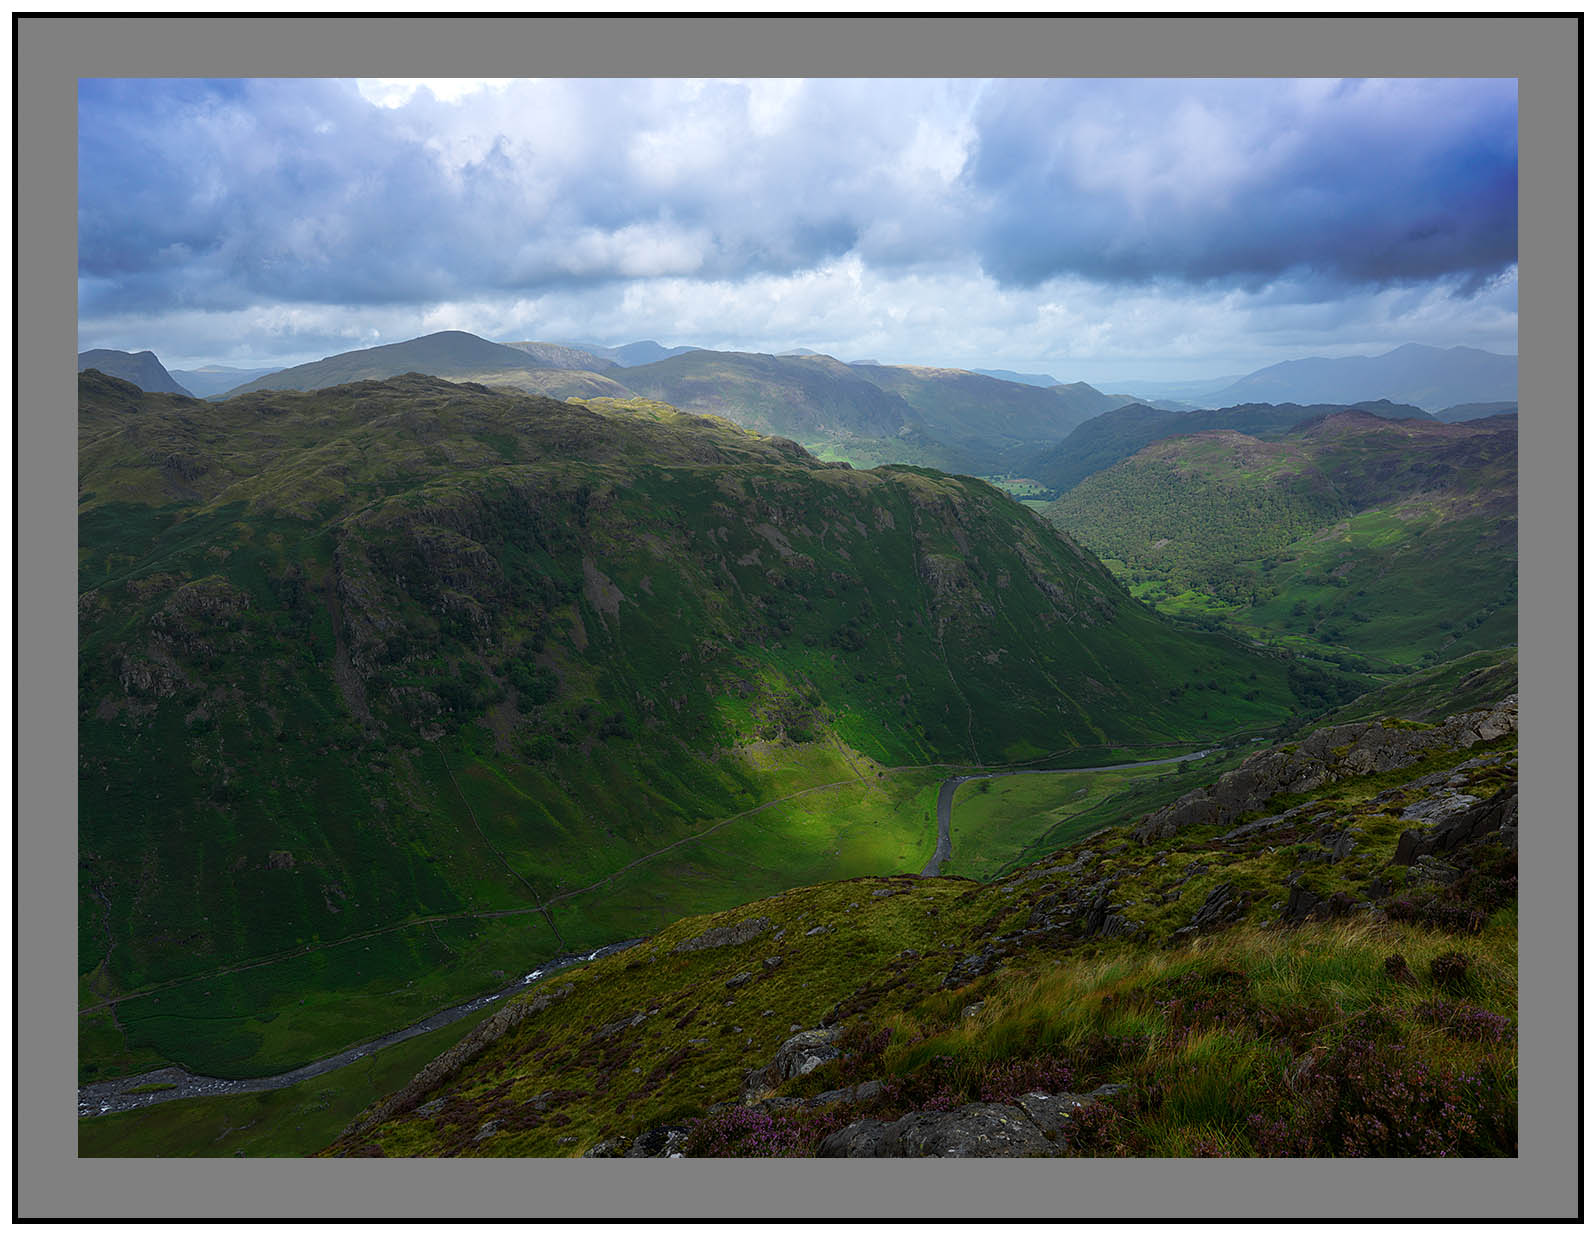 A 5805 Langstrath and Borrowdale from Sergeant's Crag